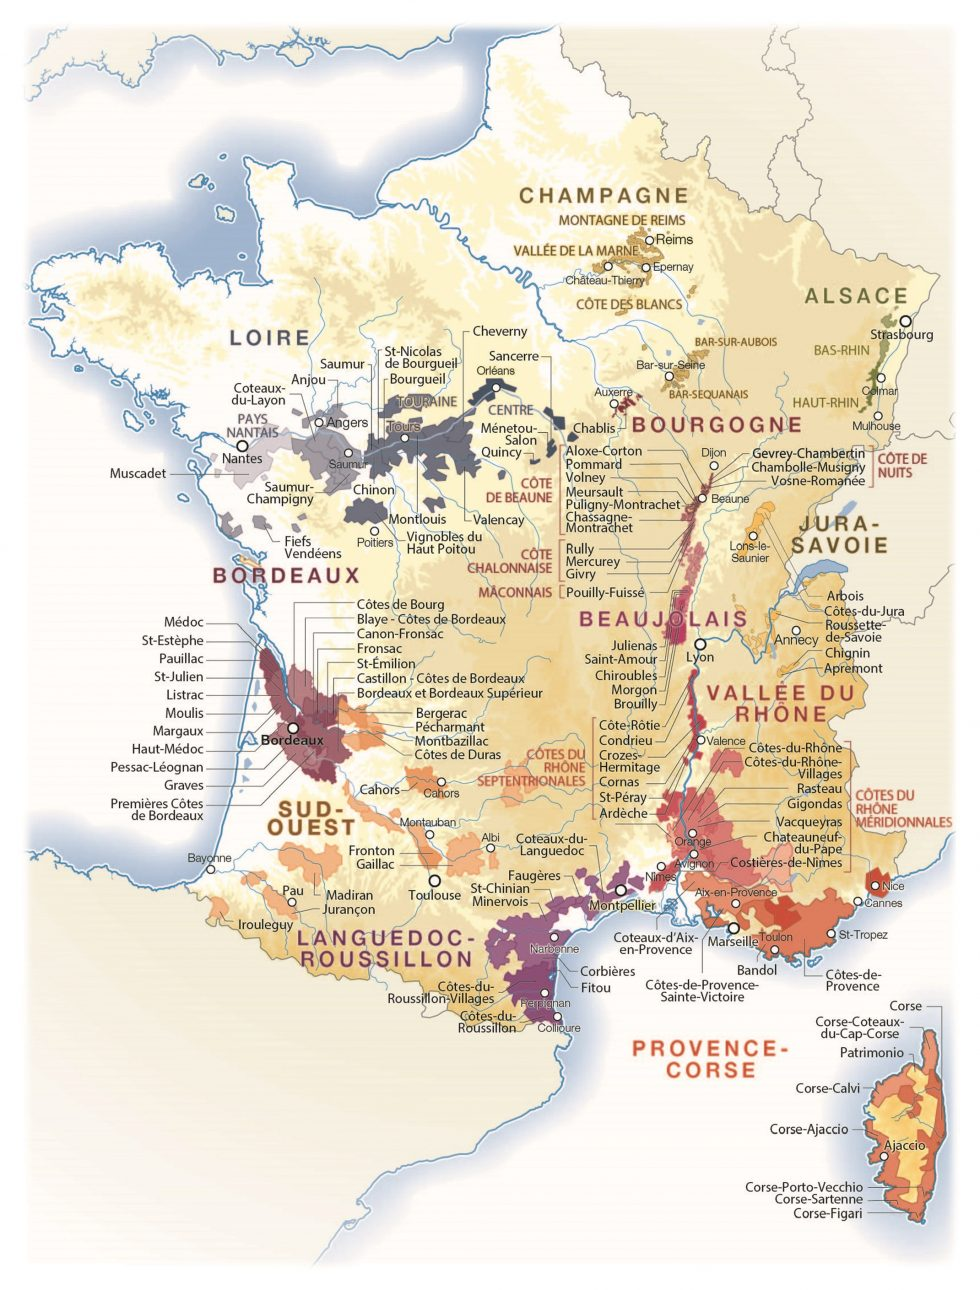 carte-vin-appellations-regions-